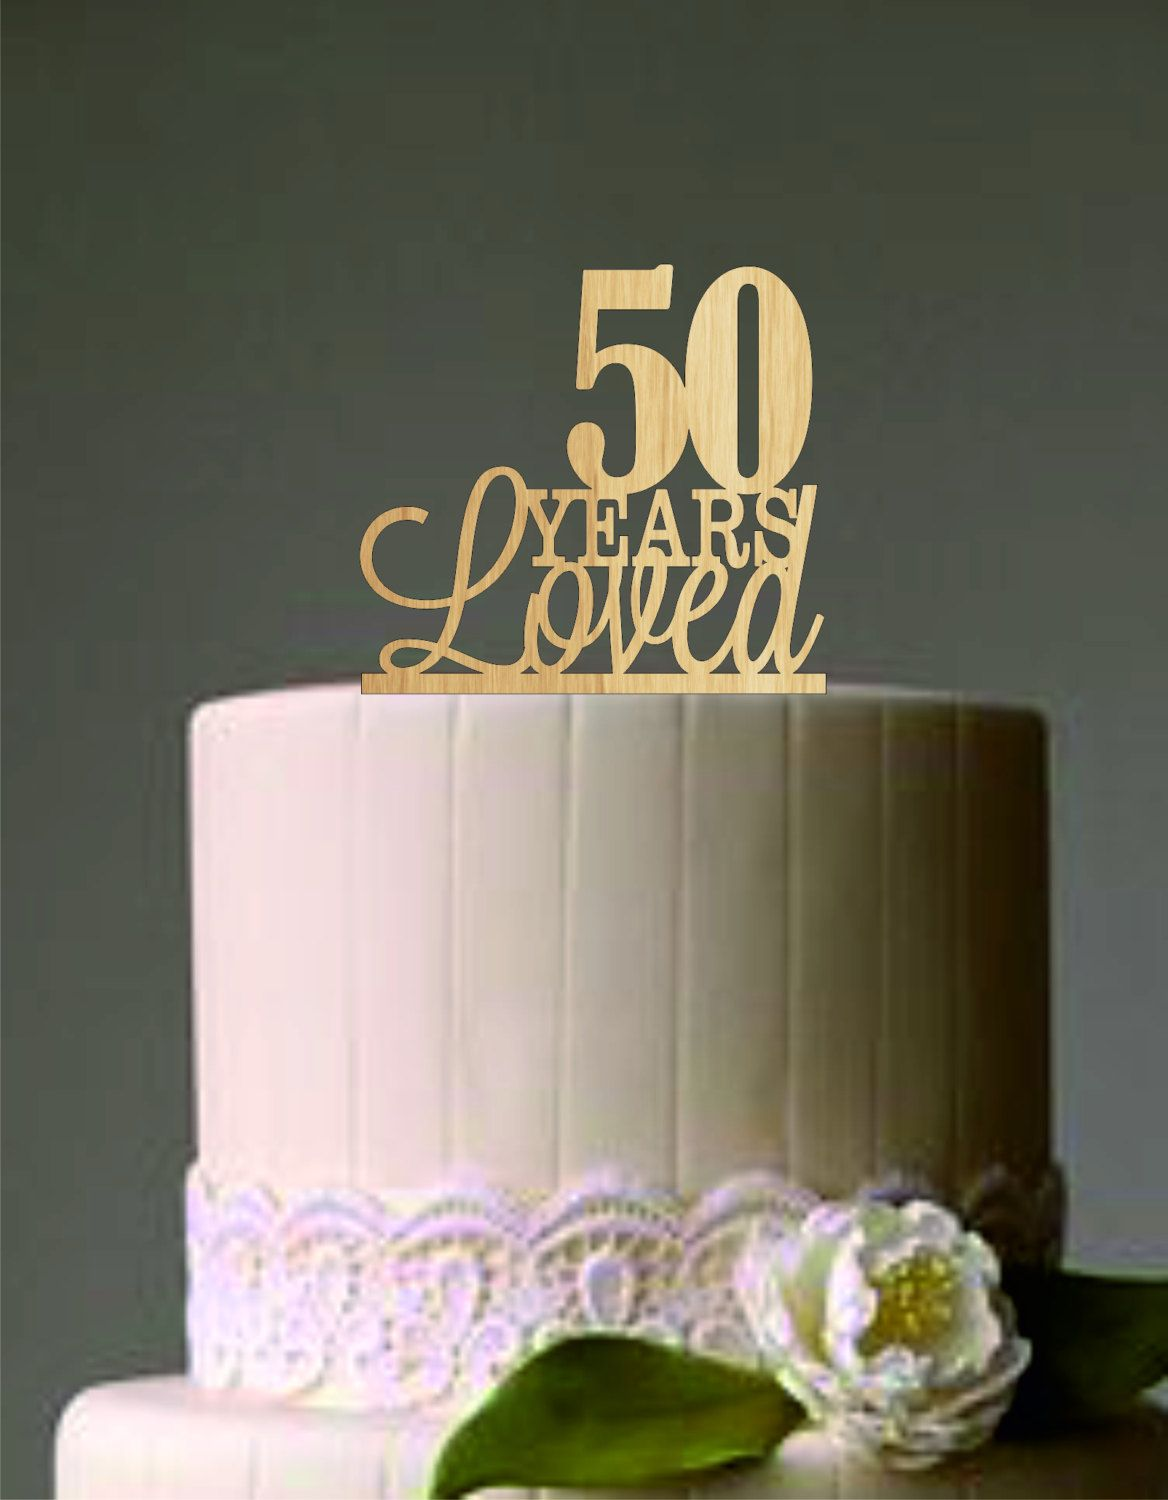 50th Anniversary Cake Topper Birthday Custom Decoration By Caketoppers667 On Etsy